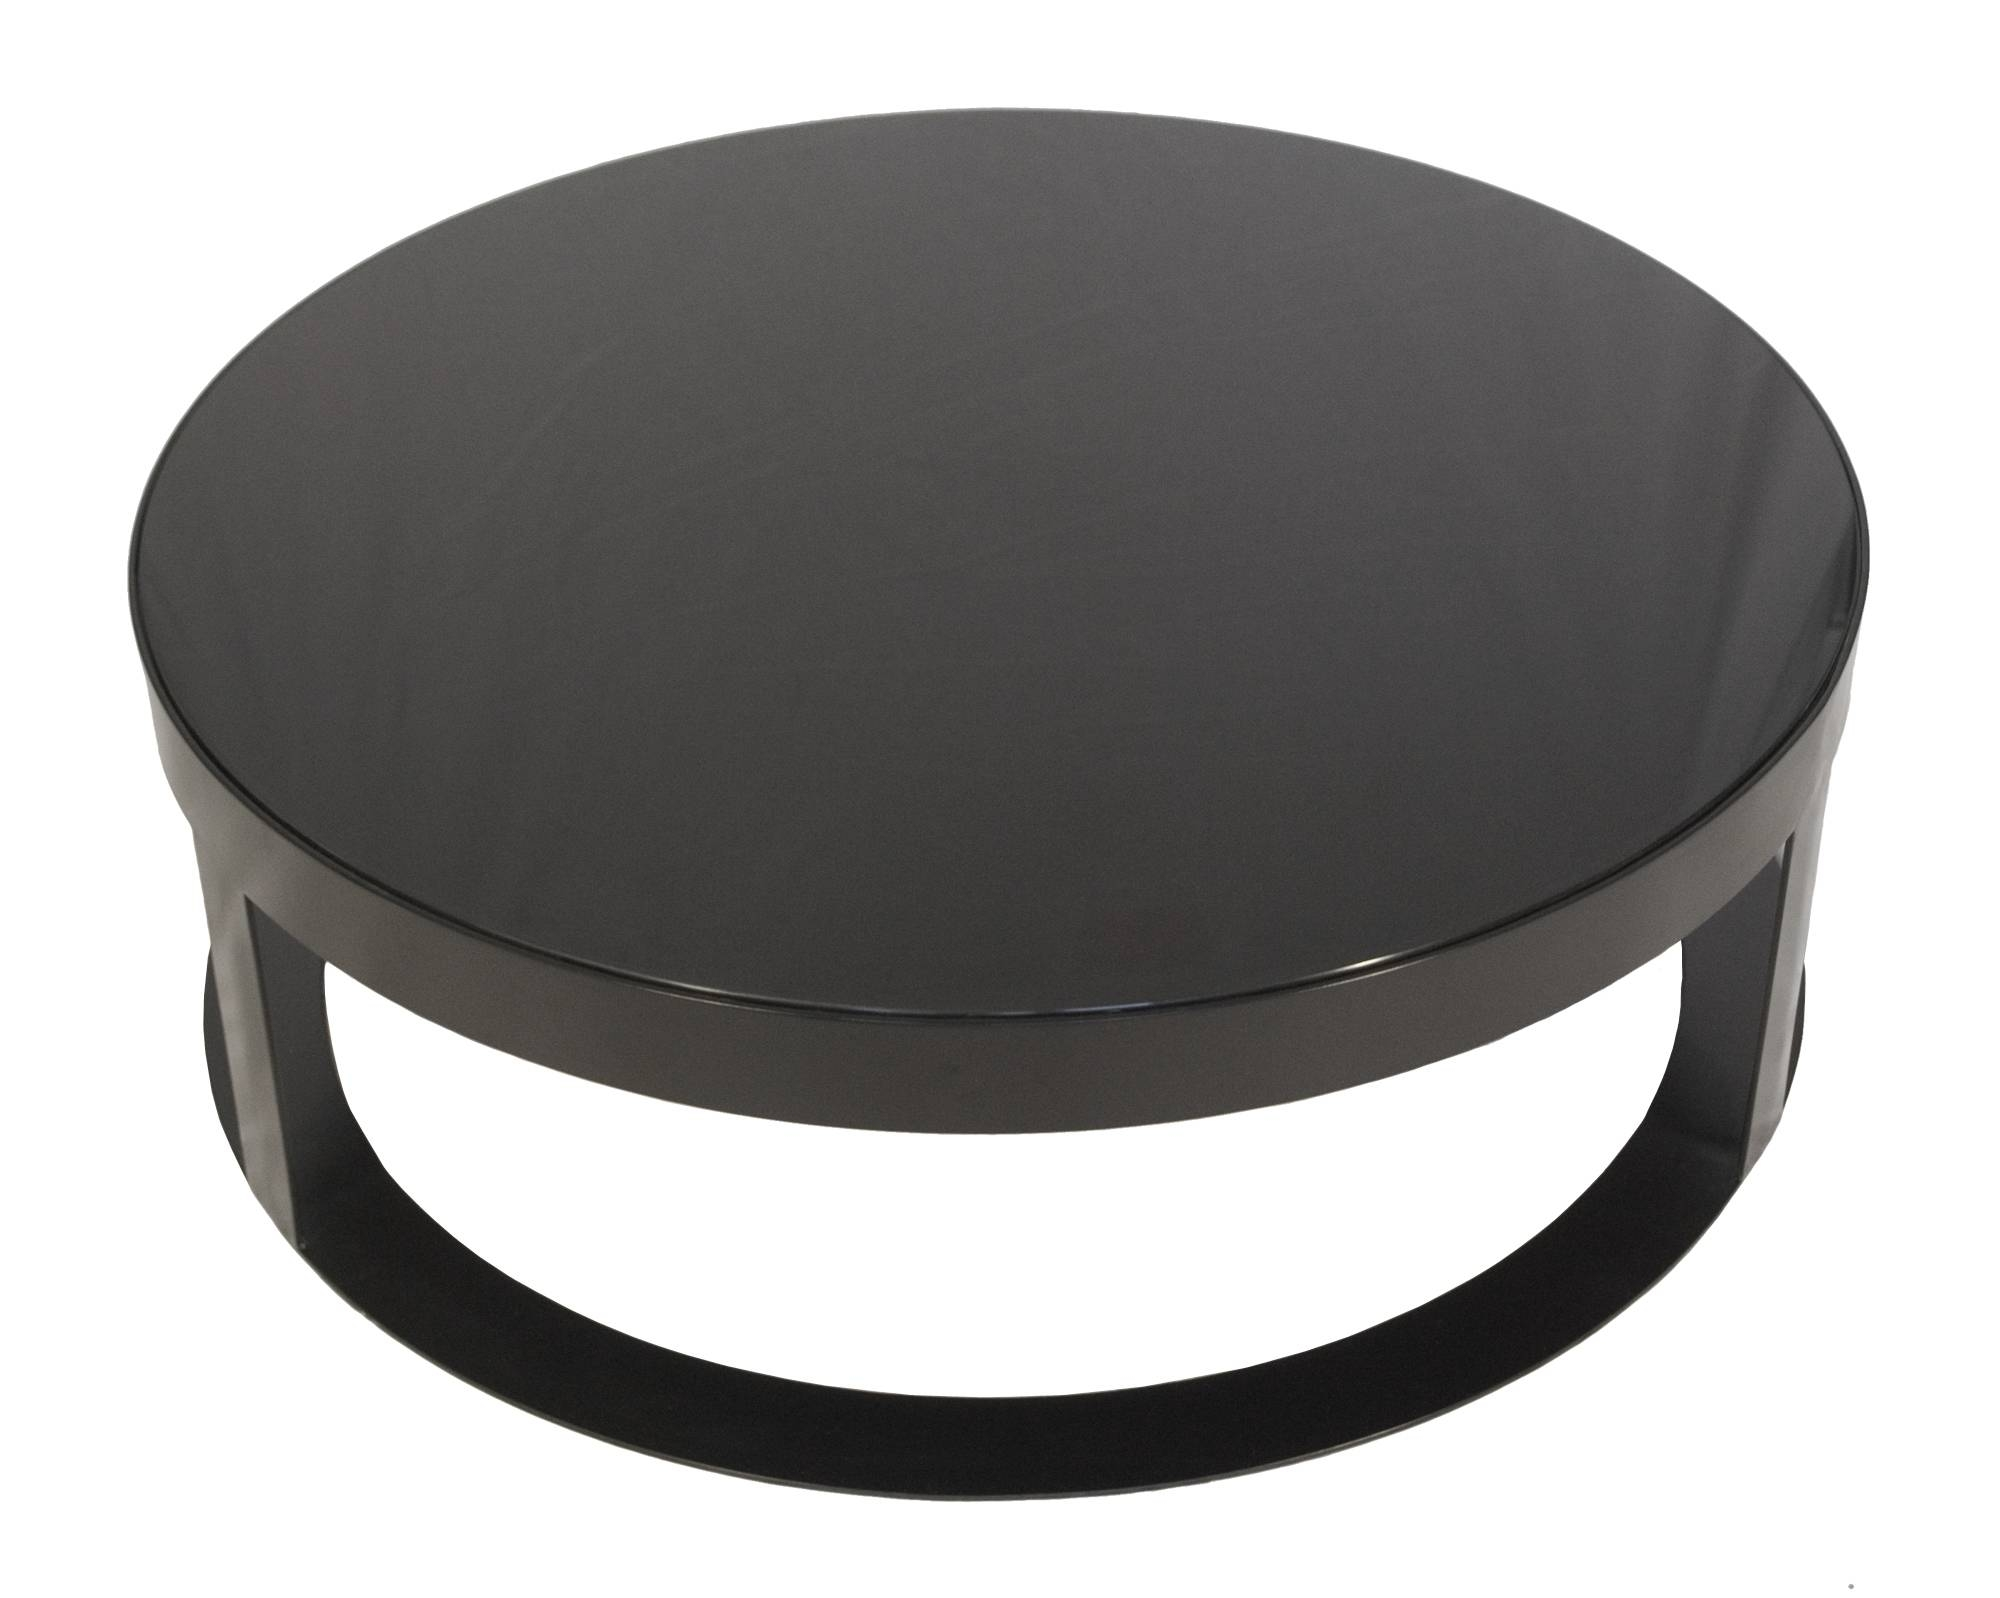 Coffee Table: Popular Round Black Coffee Table Design Ideas with regard to Solid Round Coffee Tables (Image 12 of 30)